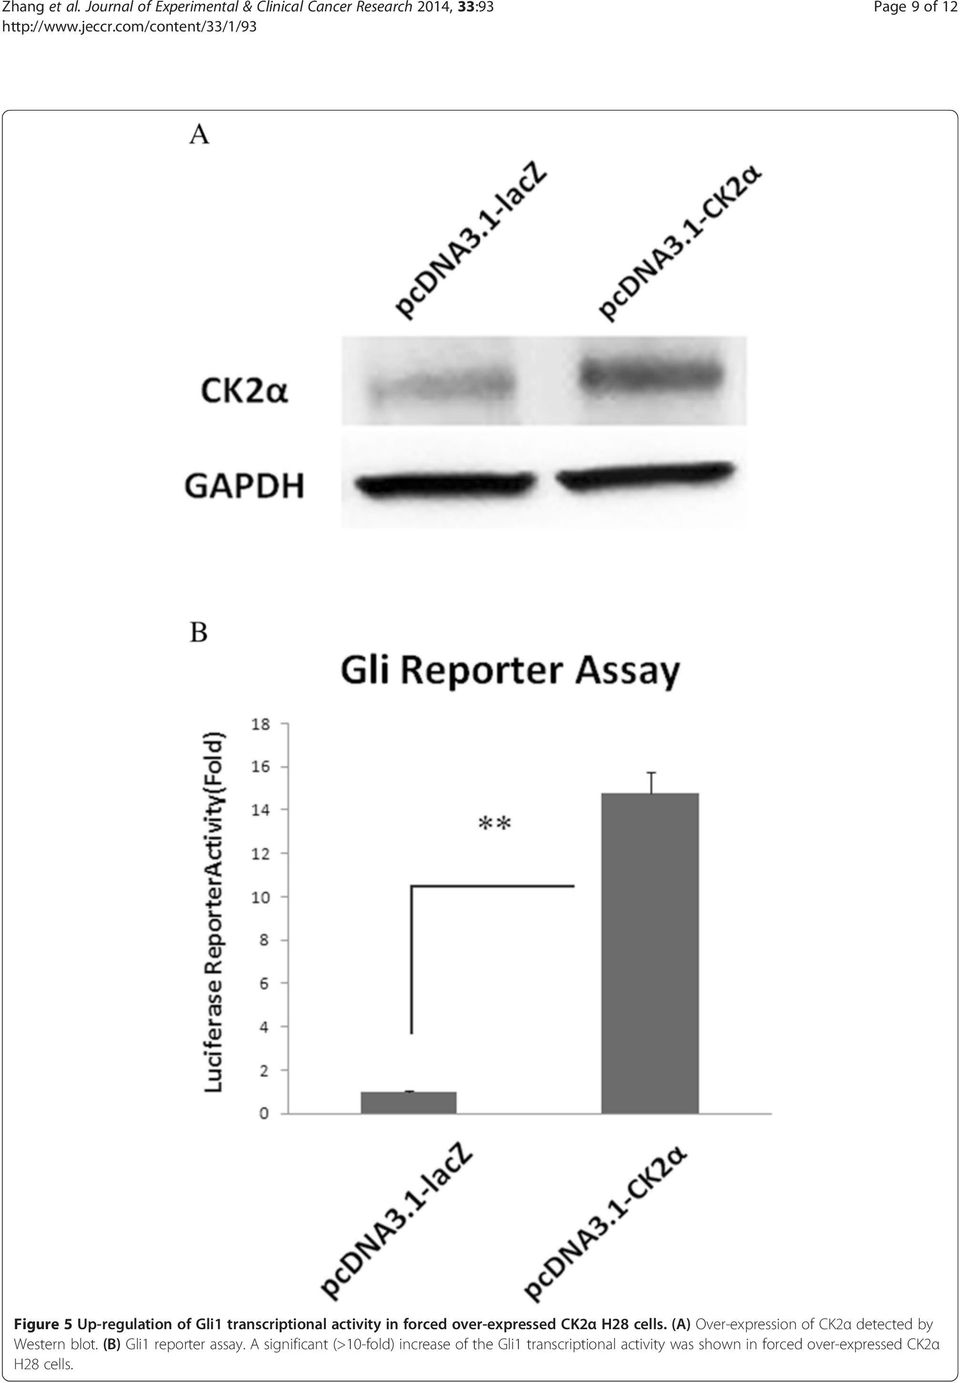 Up-regulation of Gli1 transcriptional activity in forced over-expressed CK2α H28 cells.